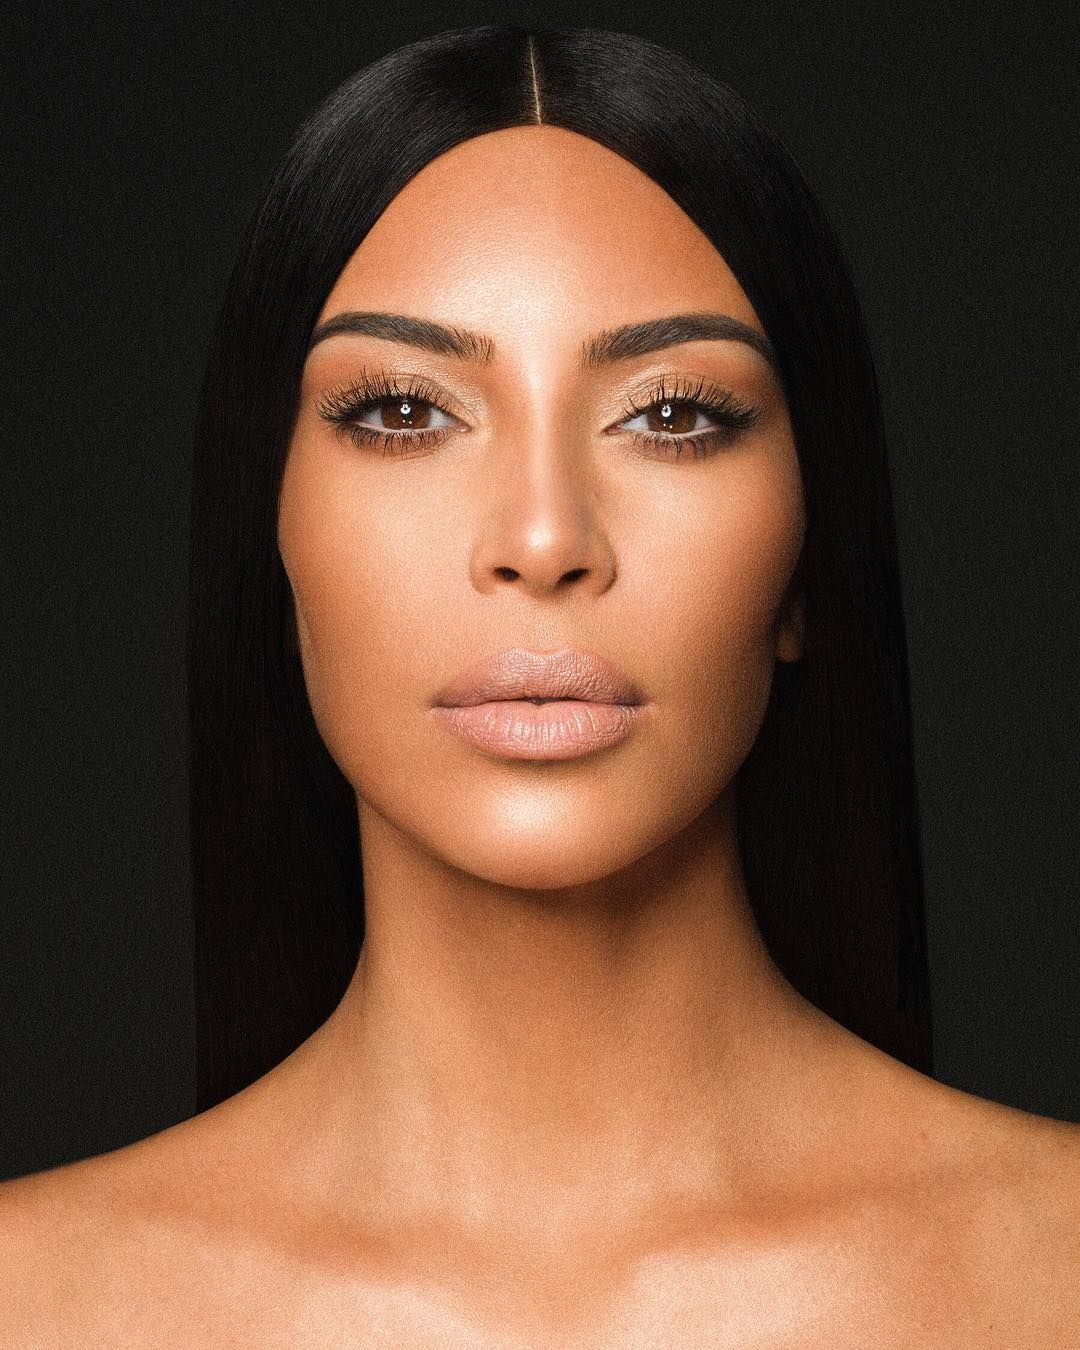 Wearing Kimberly Kkw X Kylie Kim Kardashian Eyebrows Kim Kardashian Kardashian Beauty